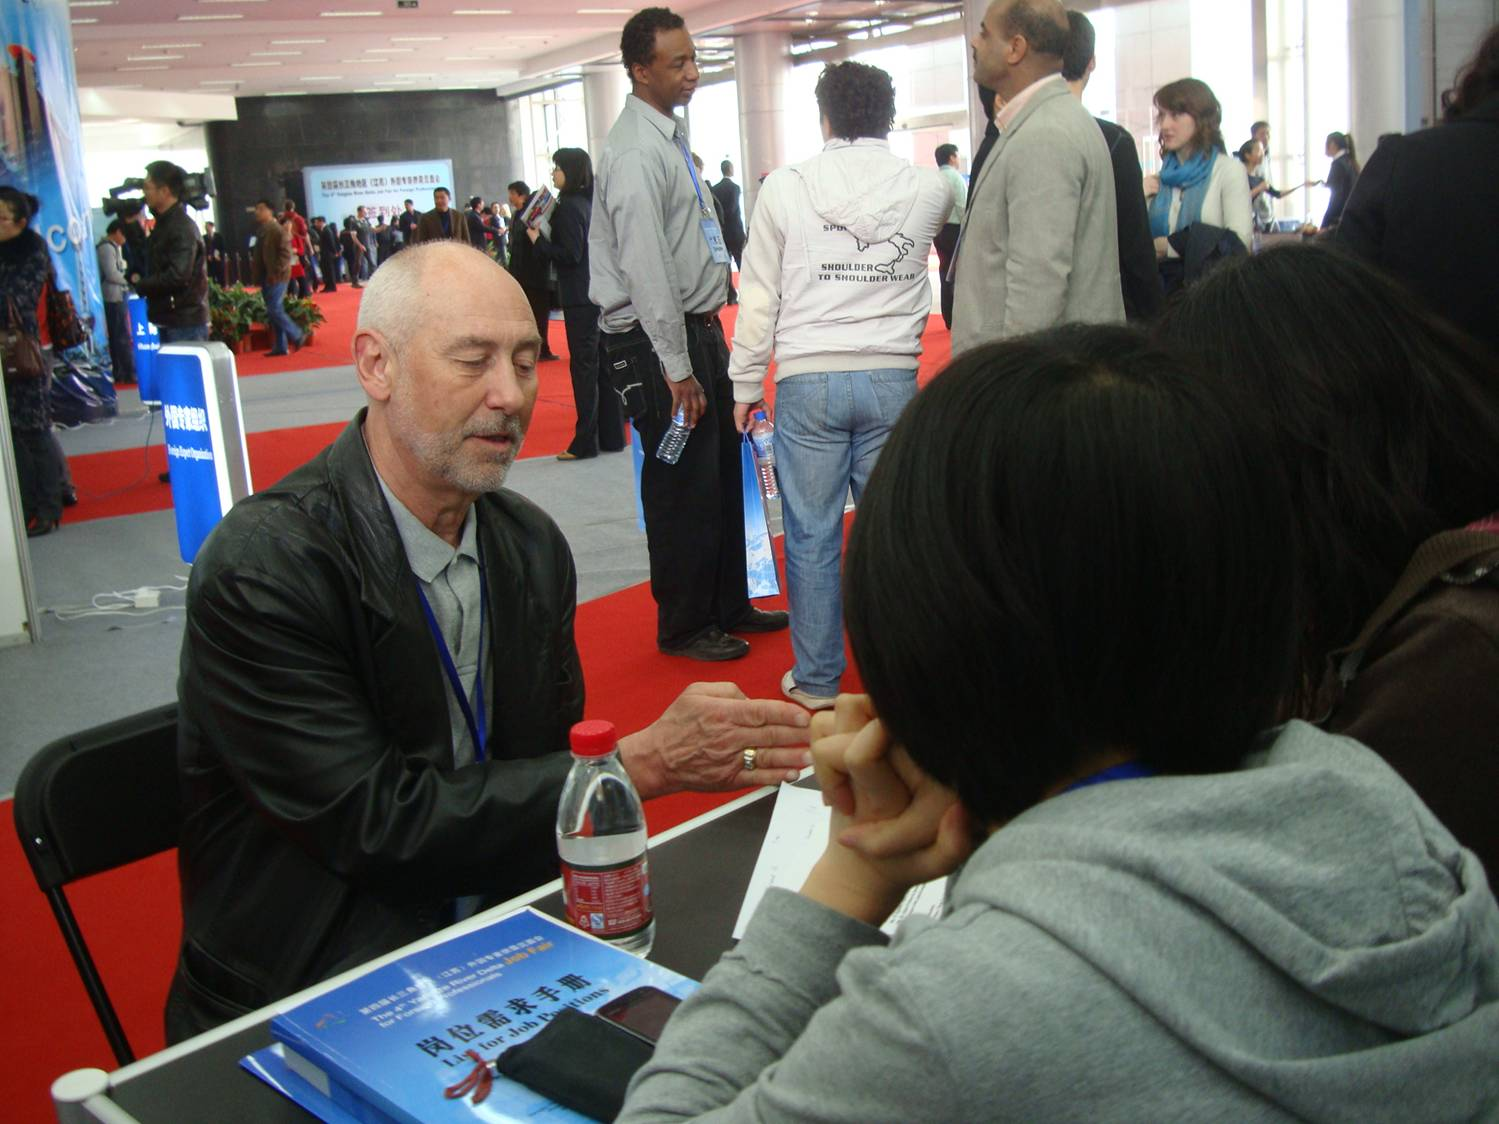 Jack explores potentials at the 4th Yangtze River Delta Job Fair for Foreign Professionals, Nanjing, China